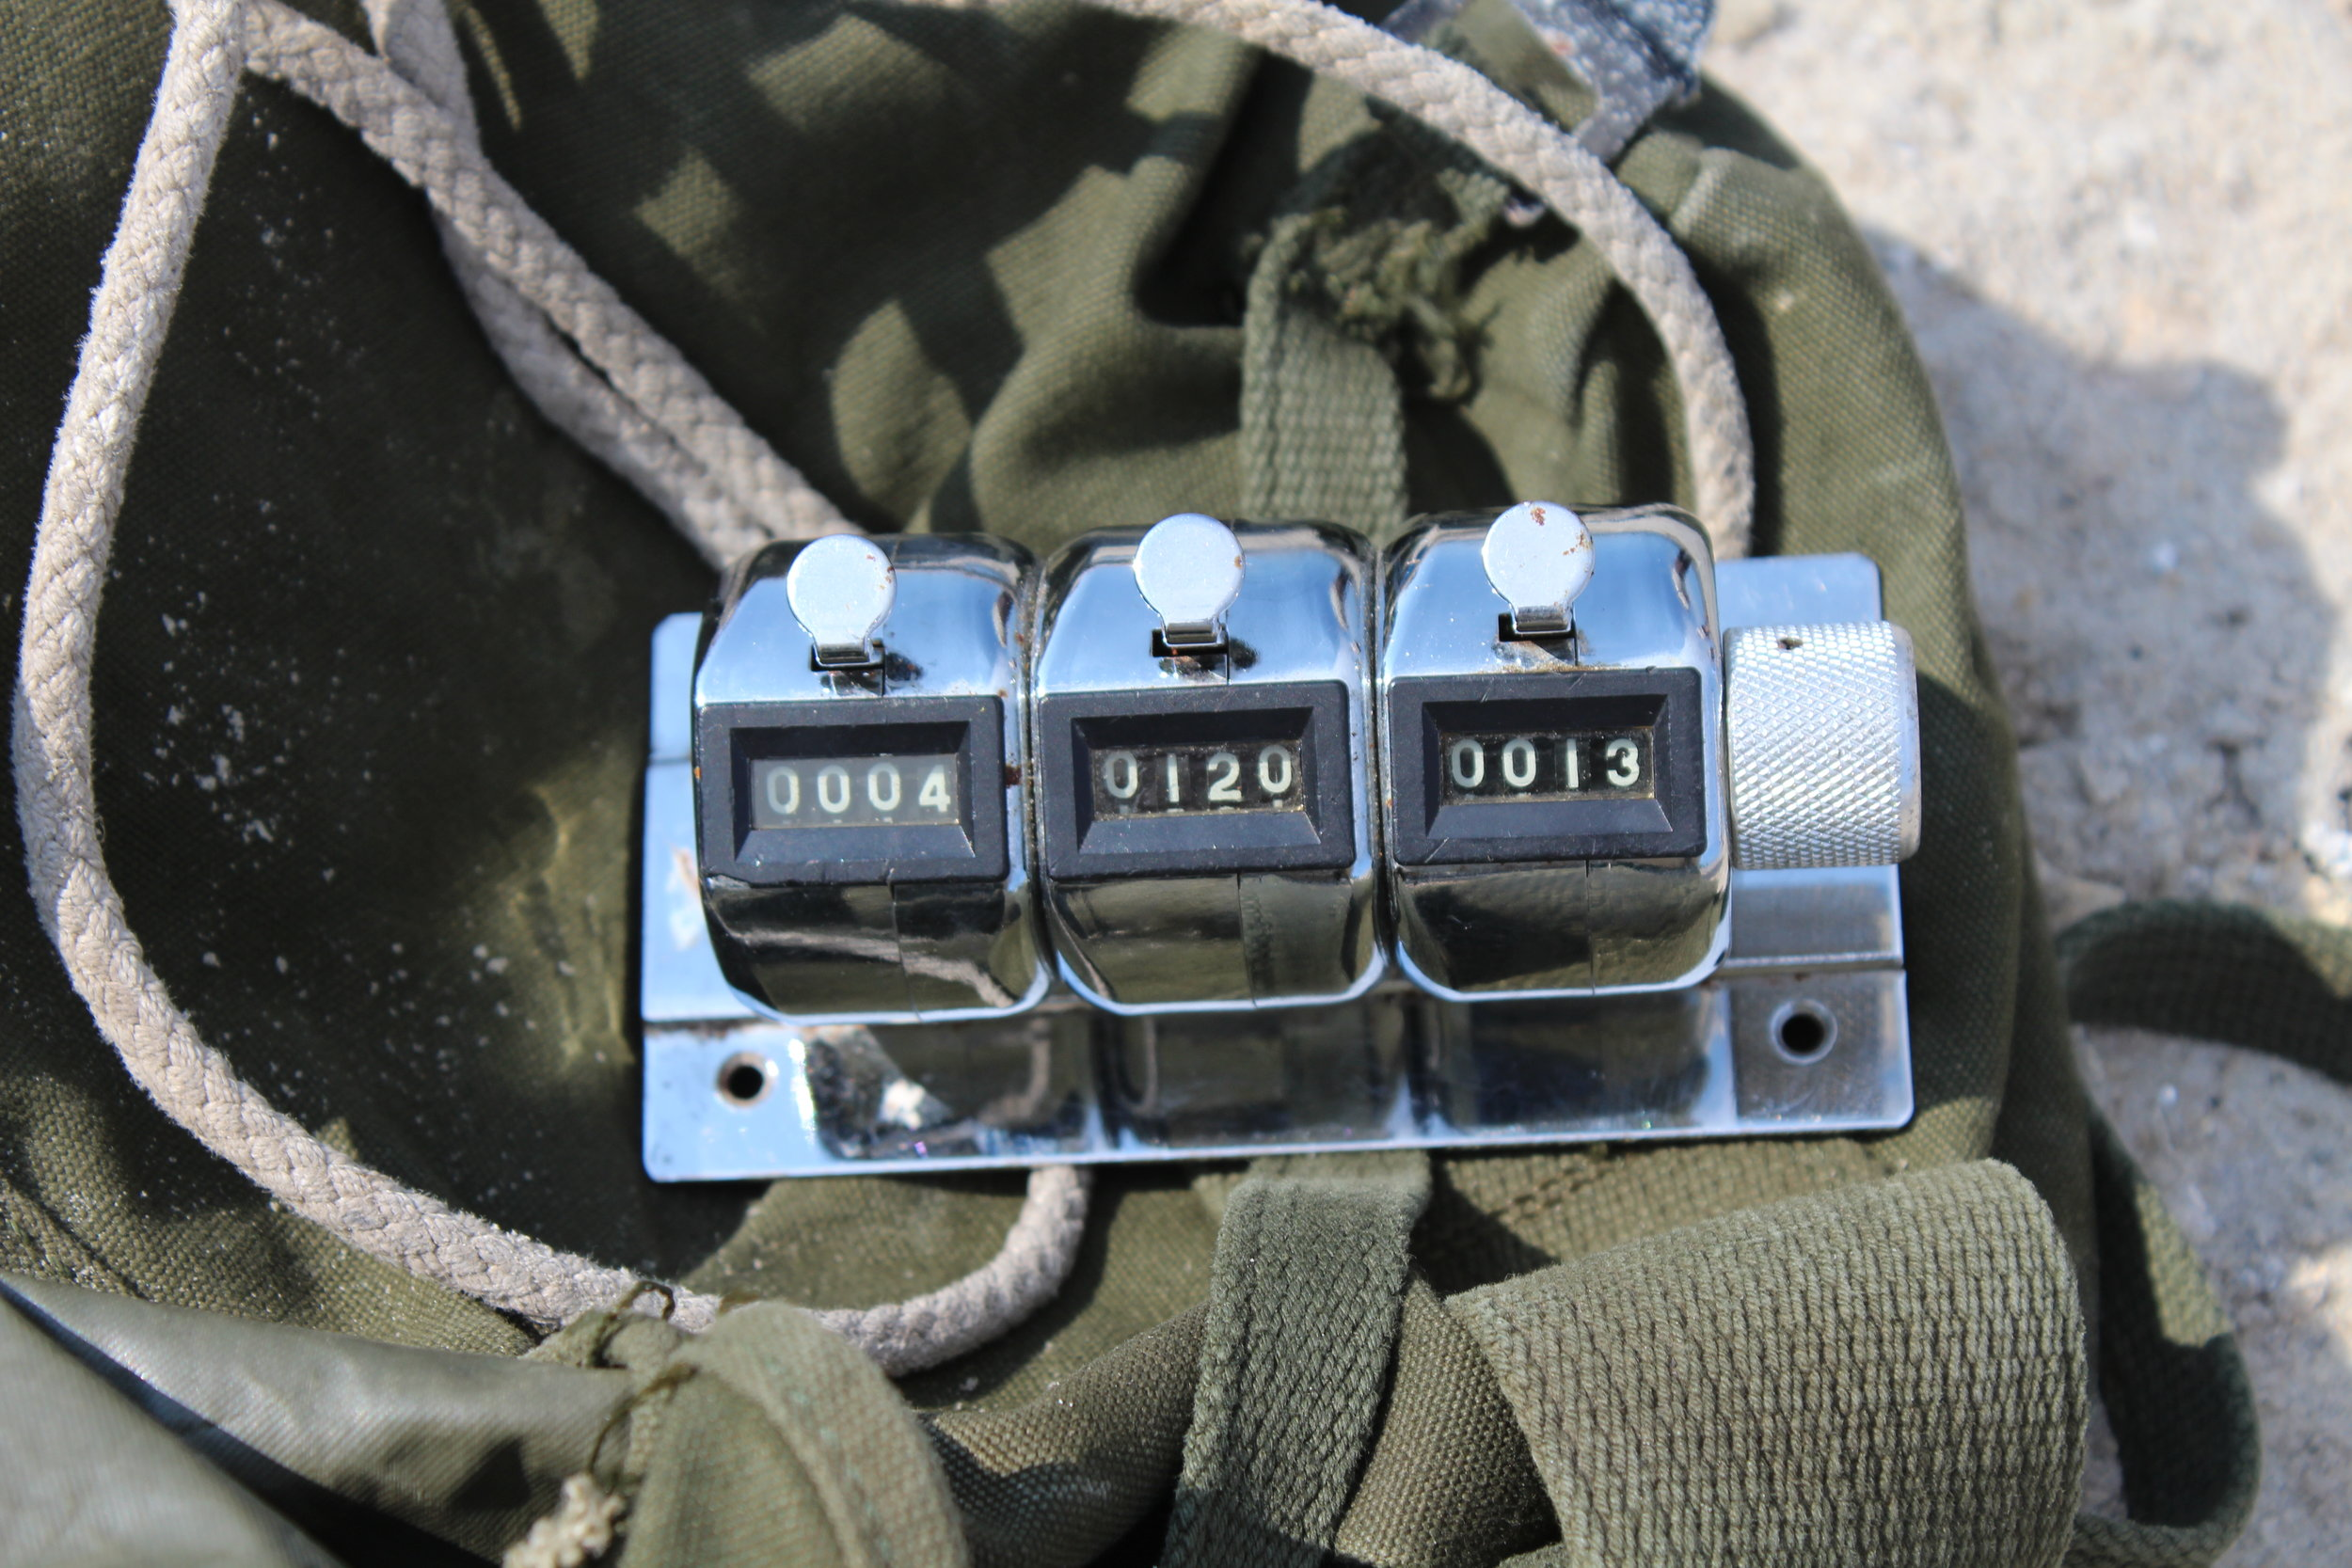 Staff and volunteers use these clickers to tally the number of nests they see for each species. (Photo: E. Weeks/SCDNR)